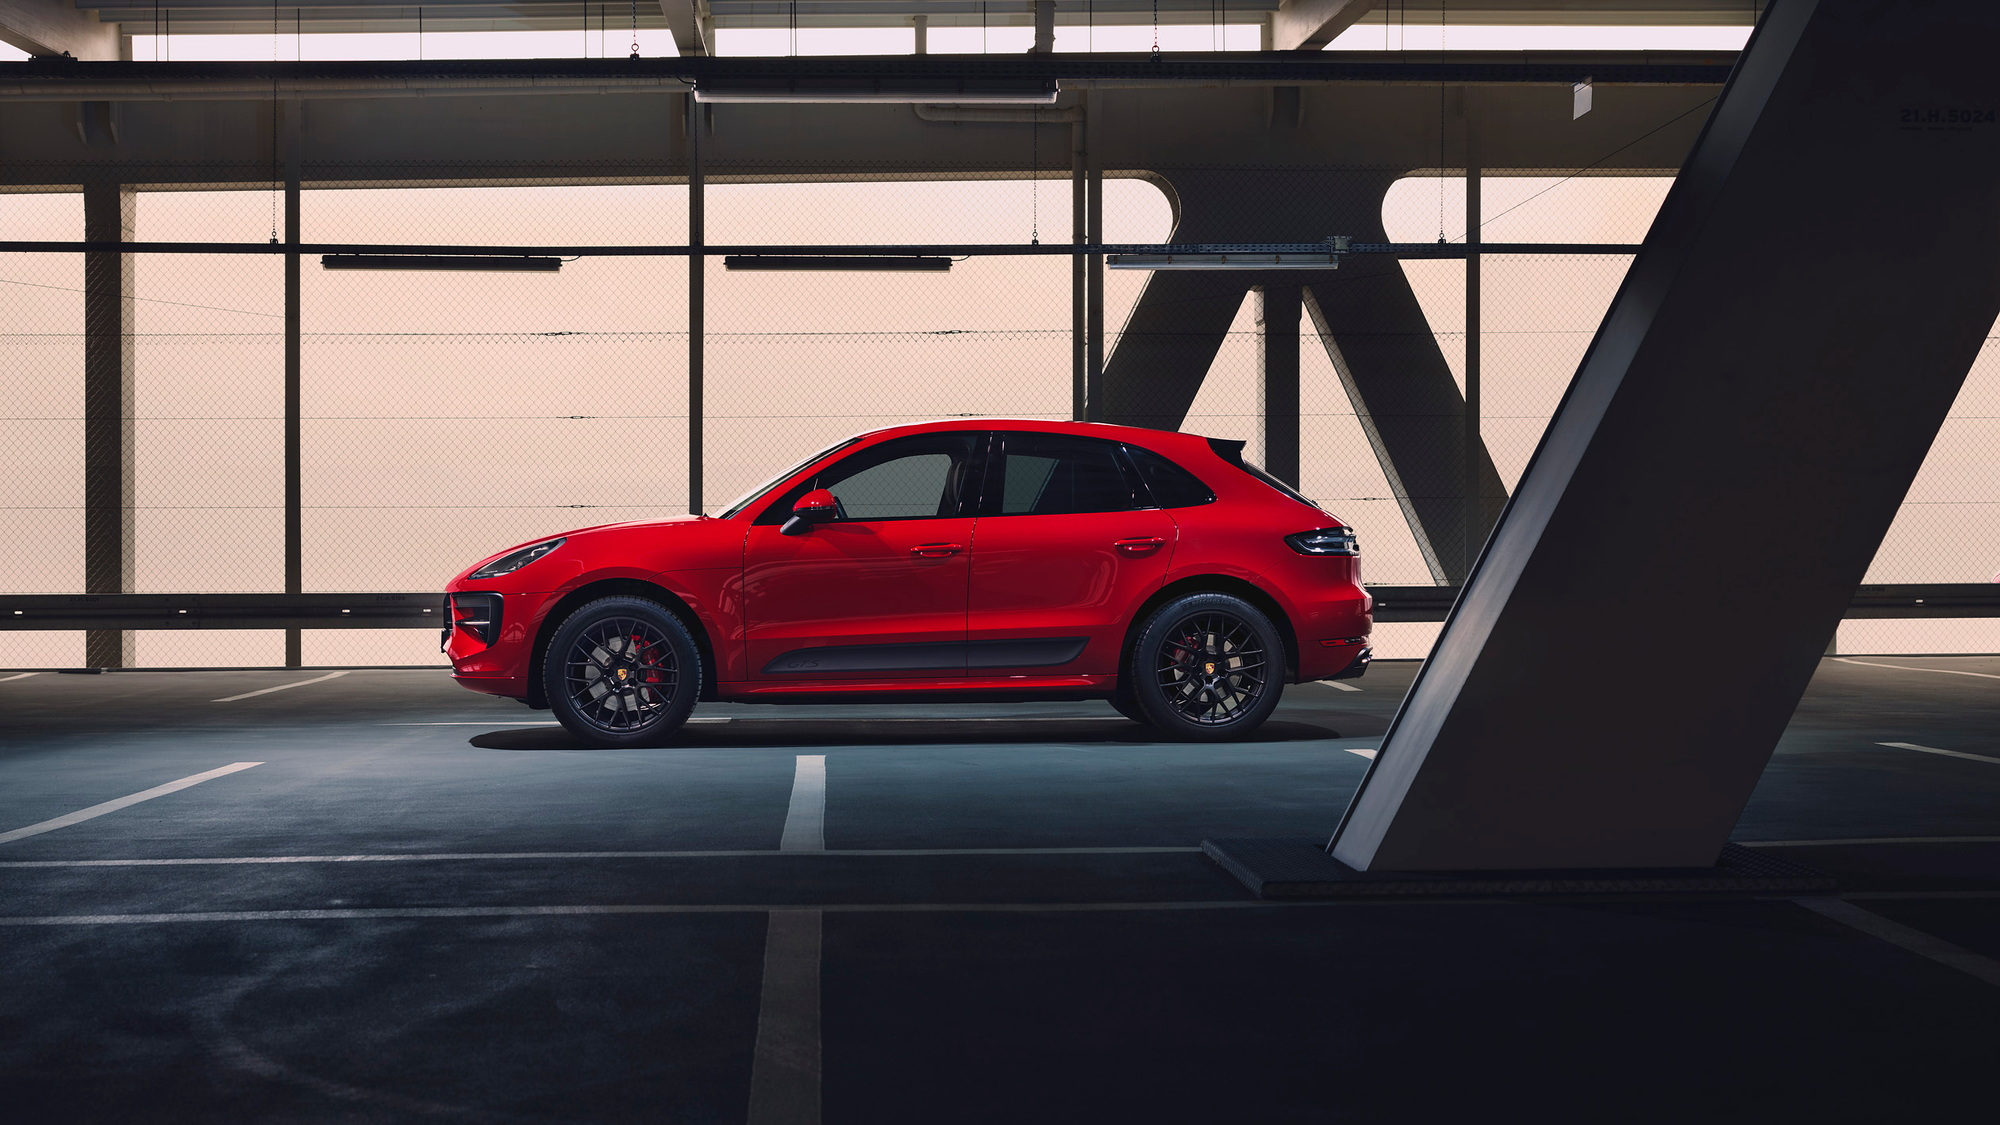 Porsche Macan GTS aims for the sweet spot in crossover's last lap